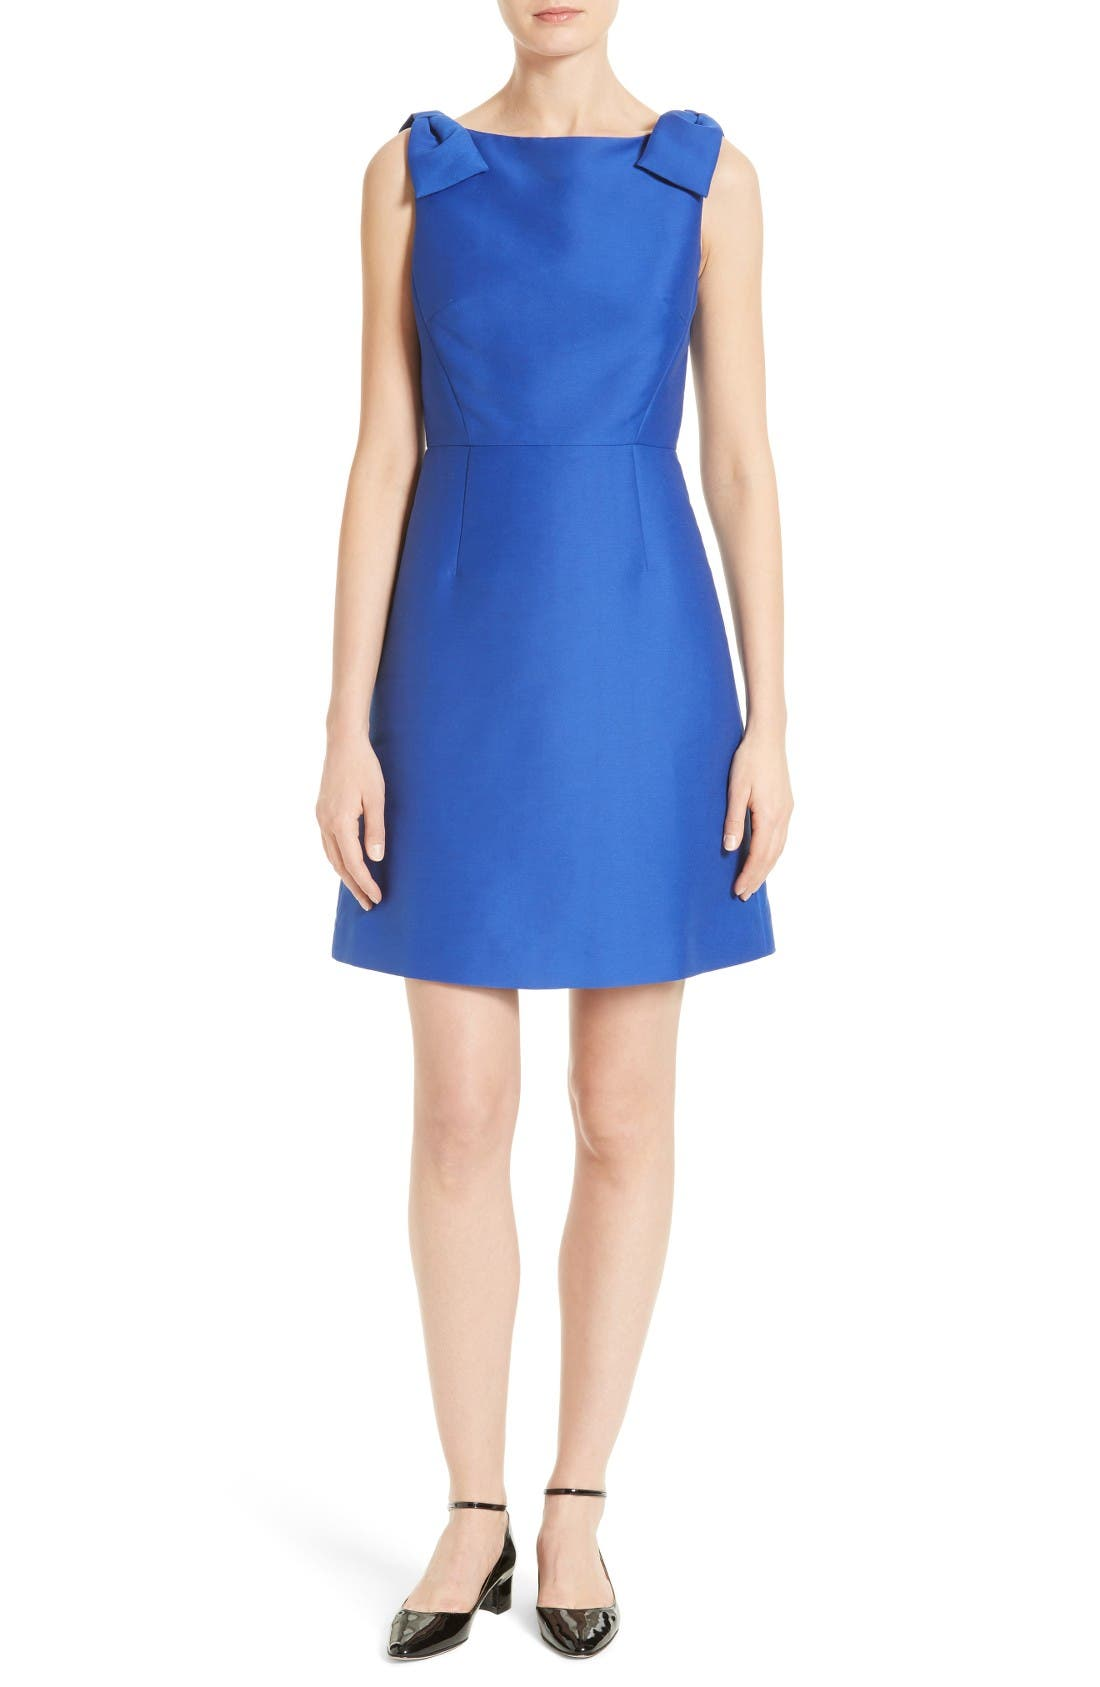 KATE SPADE NEW YORK double bow a-line dress